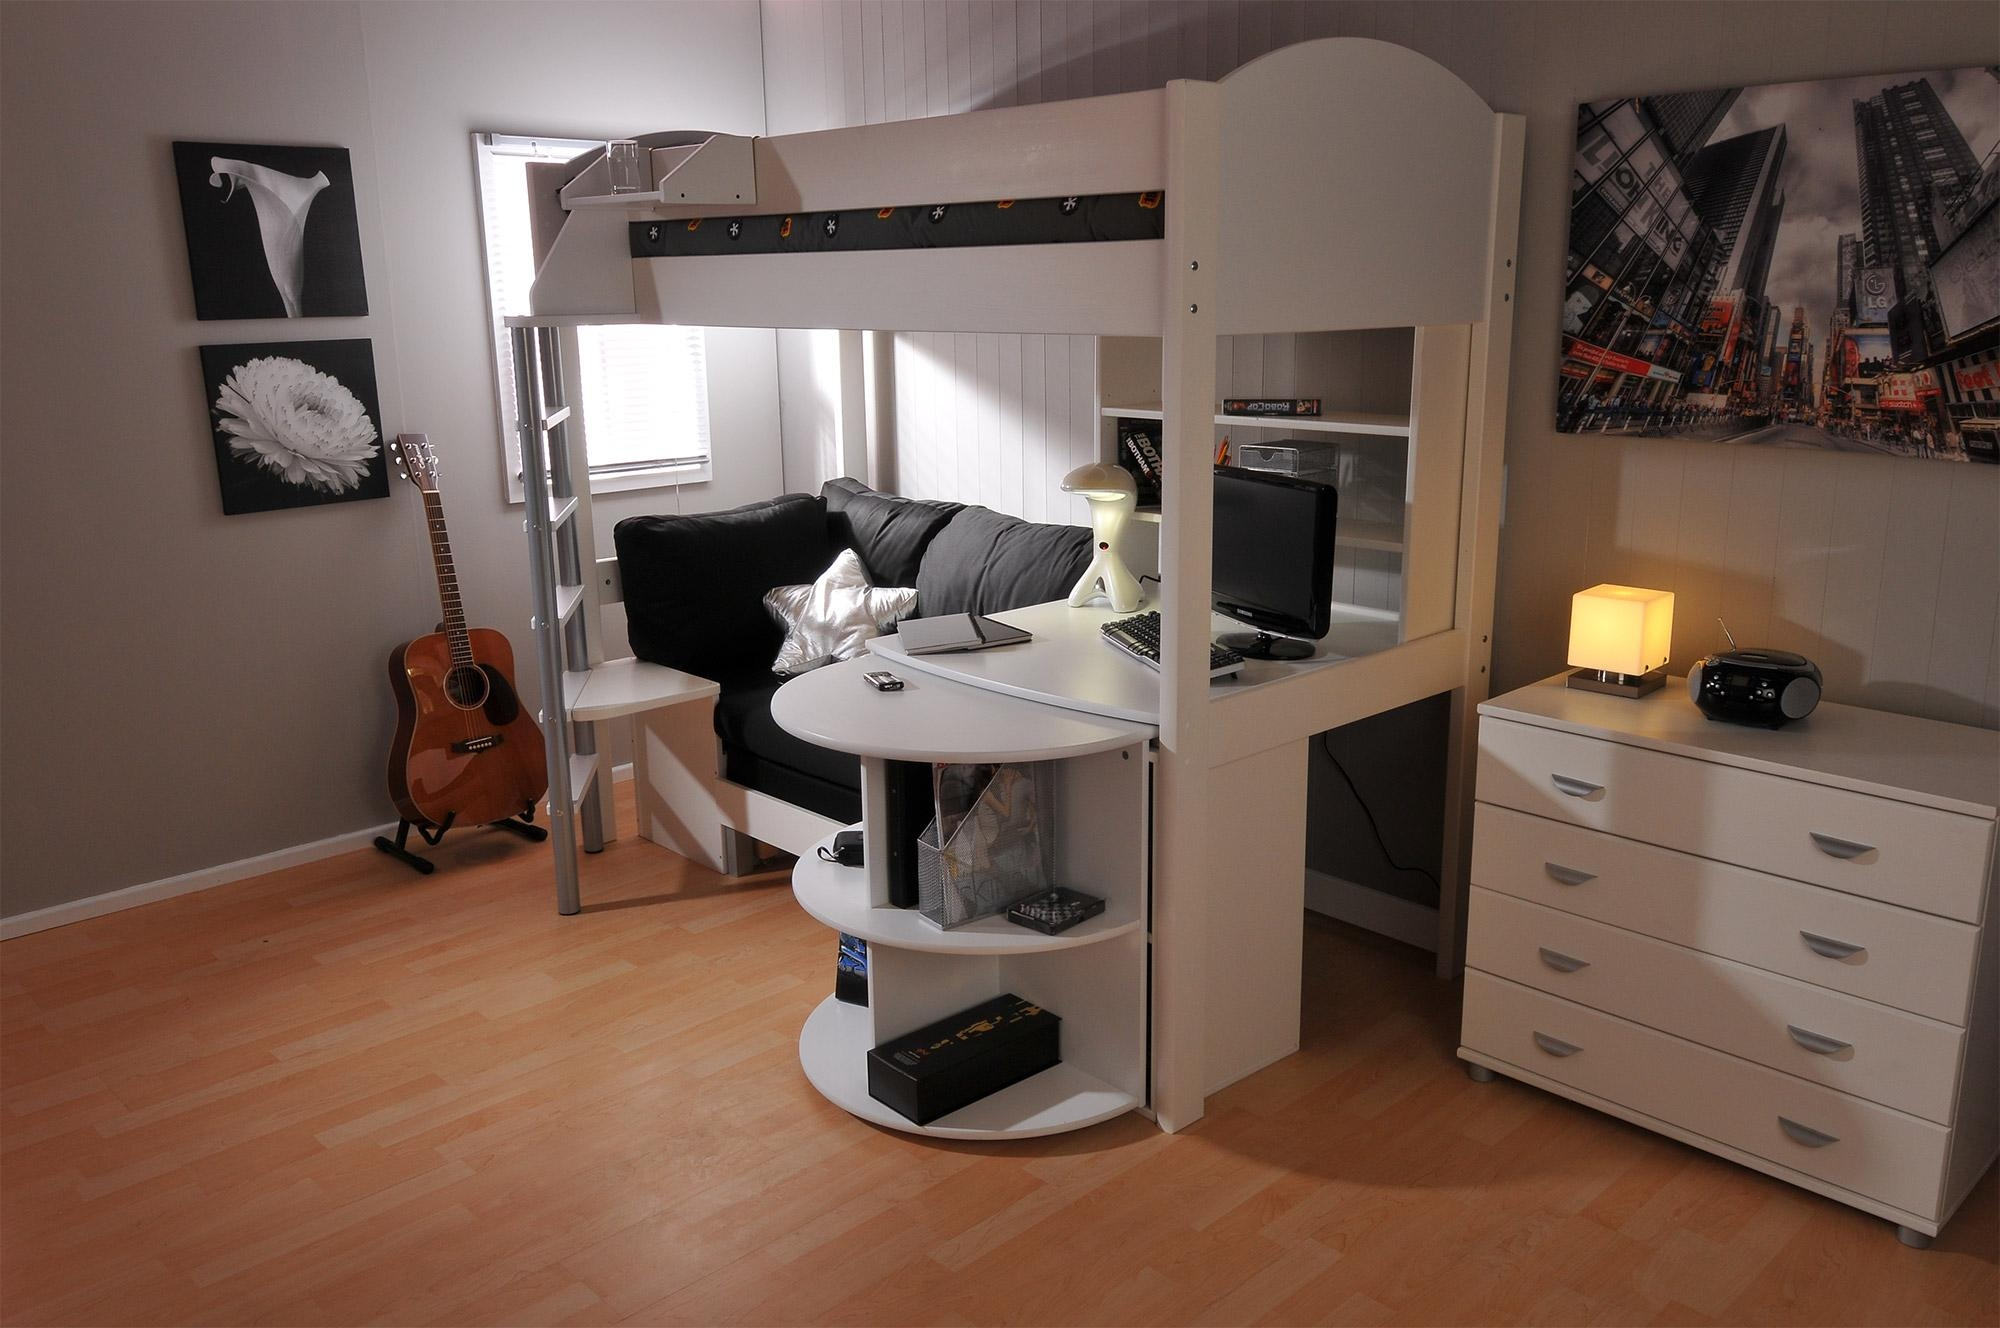 Childrens High Sleeper With Futon | Roselawnlutheran With Regard To High Sleeper Bed With Sofa (Image 3 of 20)